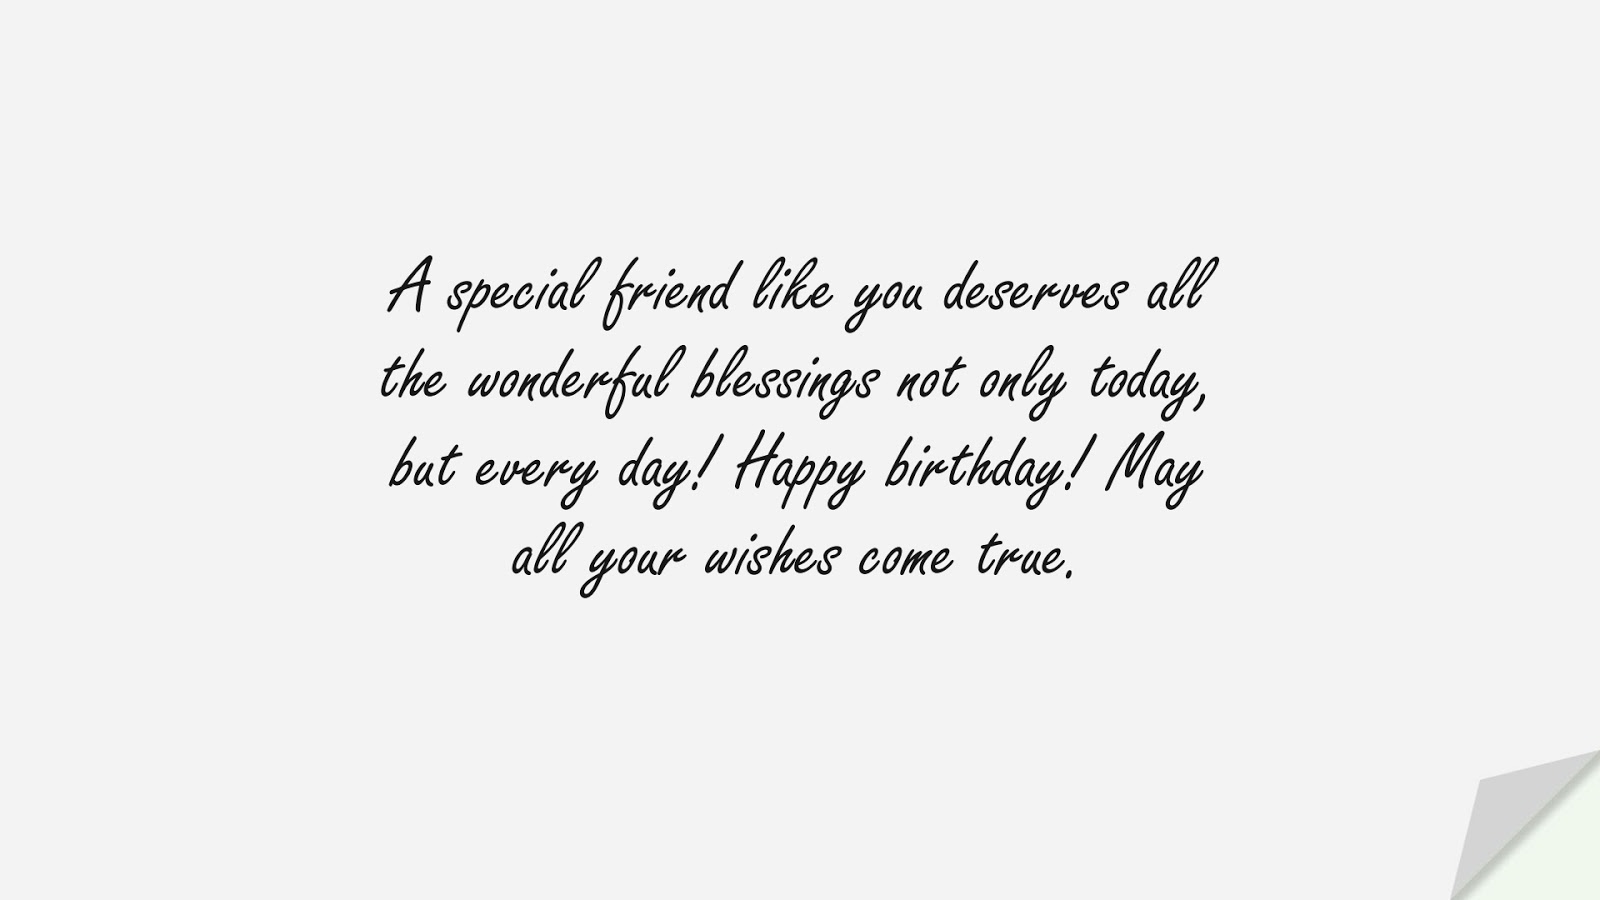 A special friend like you deserves all the wonderful blessings not only today, but every day! Happy birthday! May all your wishes come true.FALSE